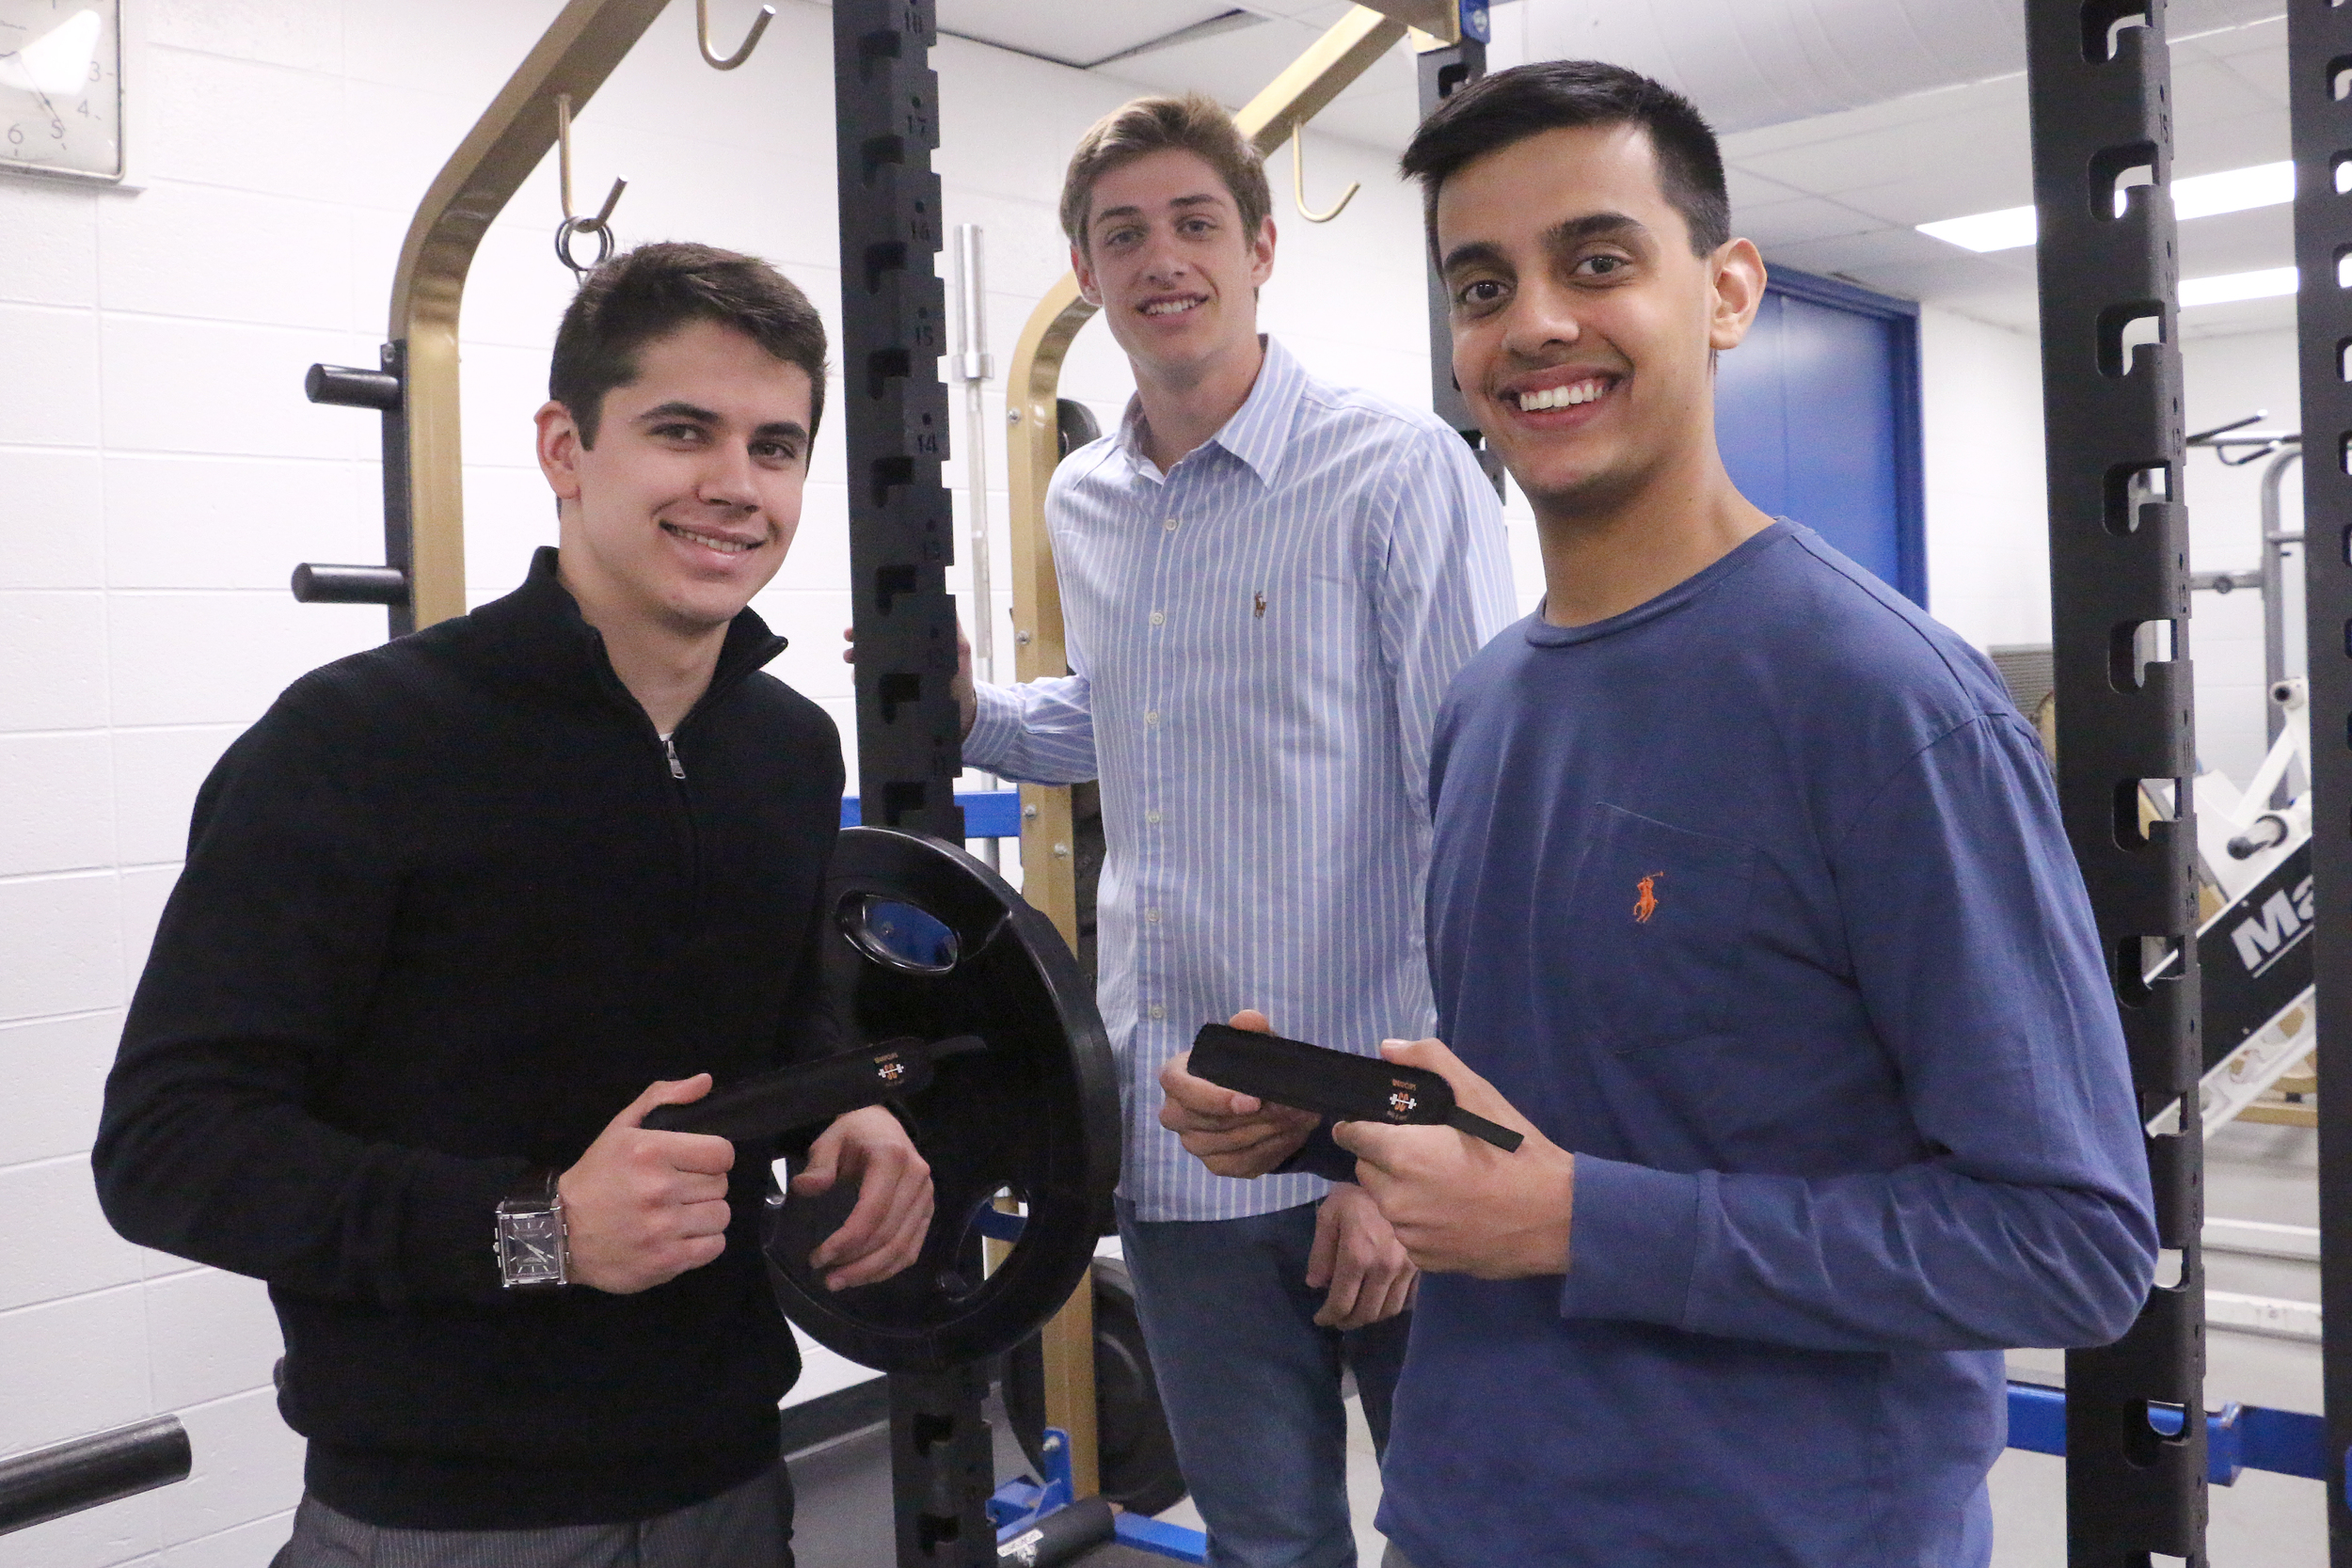 Wheeling seniors Ryan Caulfield, Martin Dimitrov, and Vraj Dharia created SnapClips